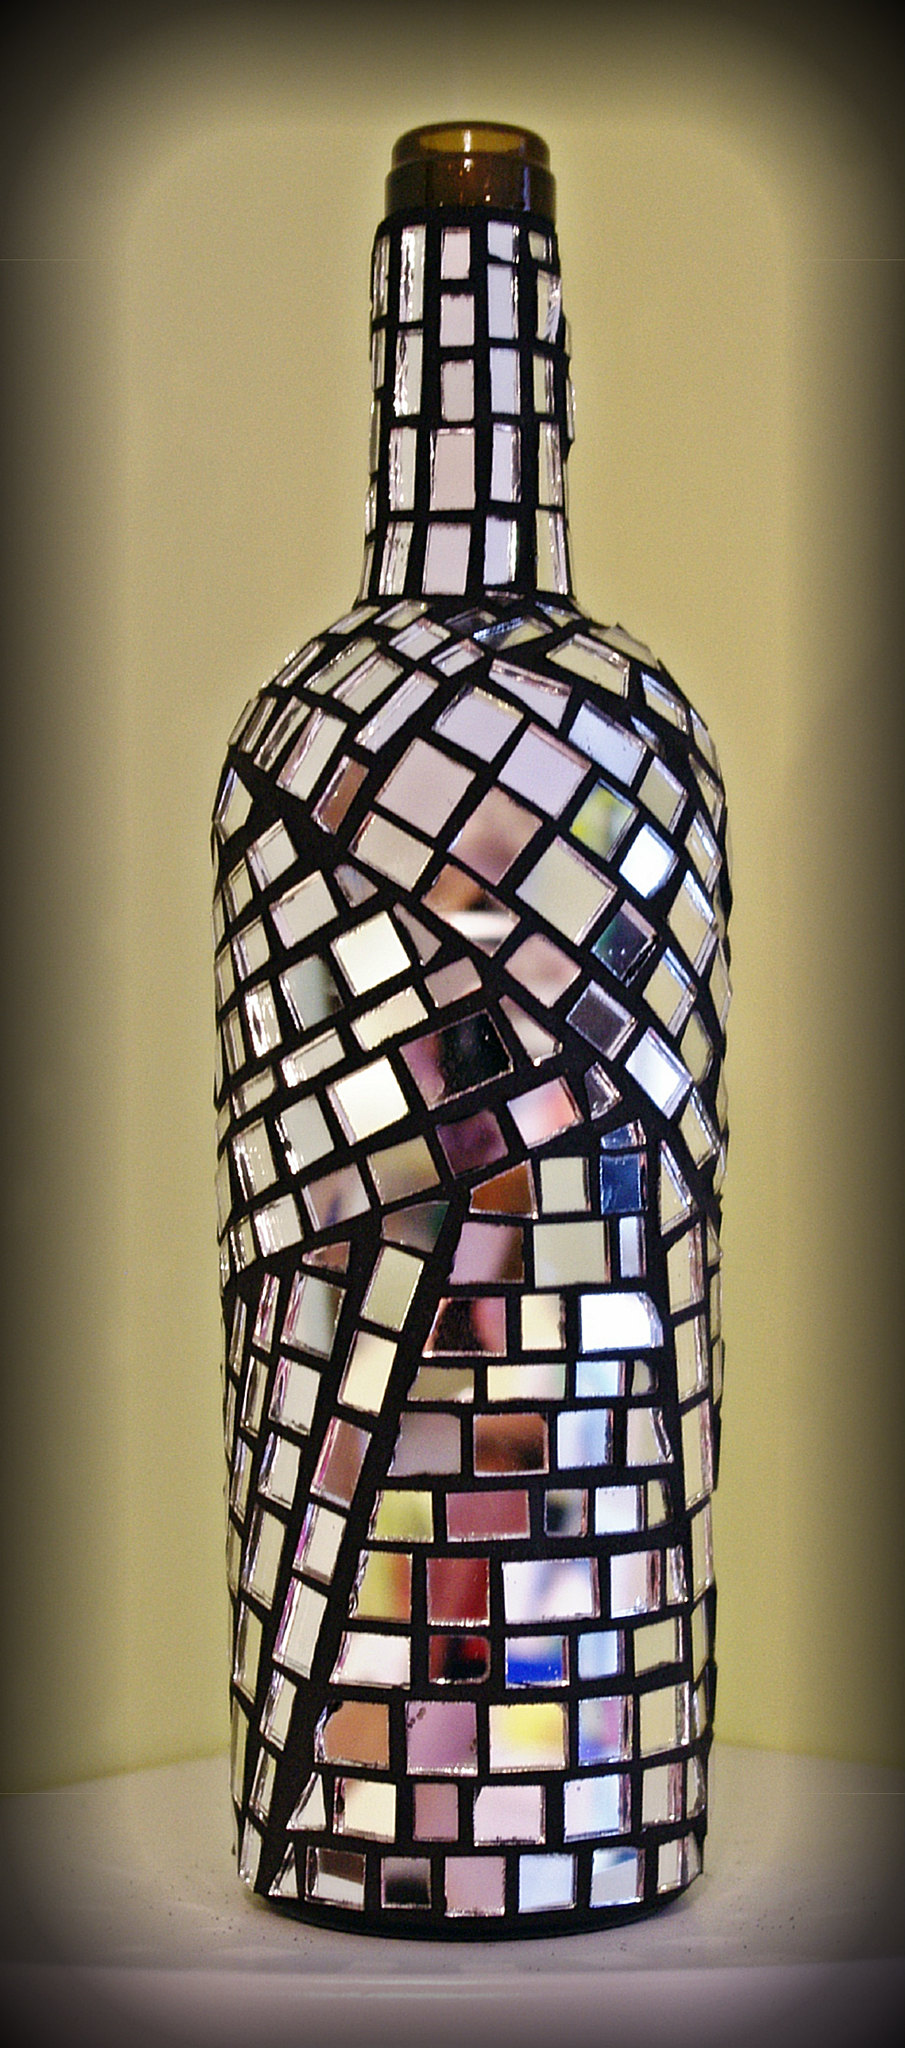 Mirror Mosaic Wine Bottle Flickr Photo Sharing